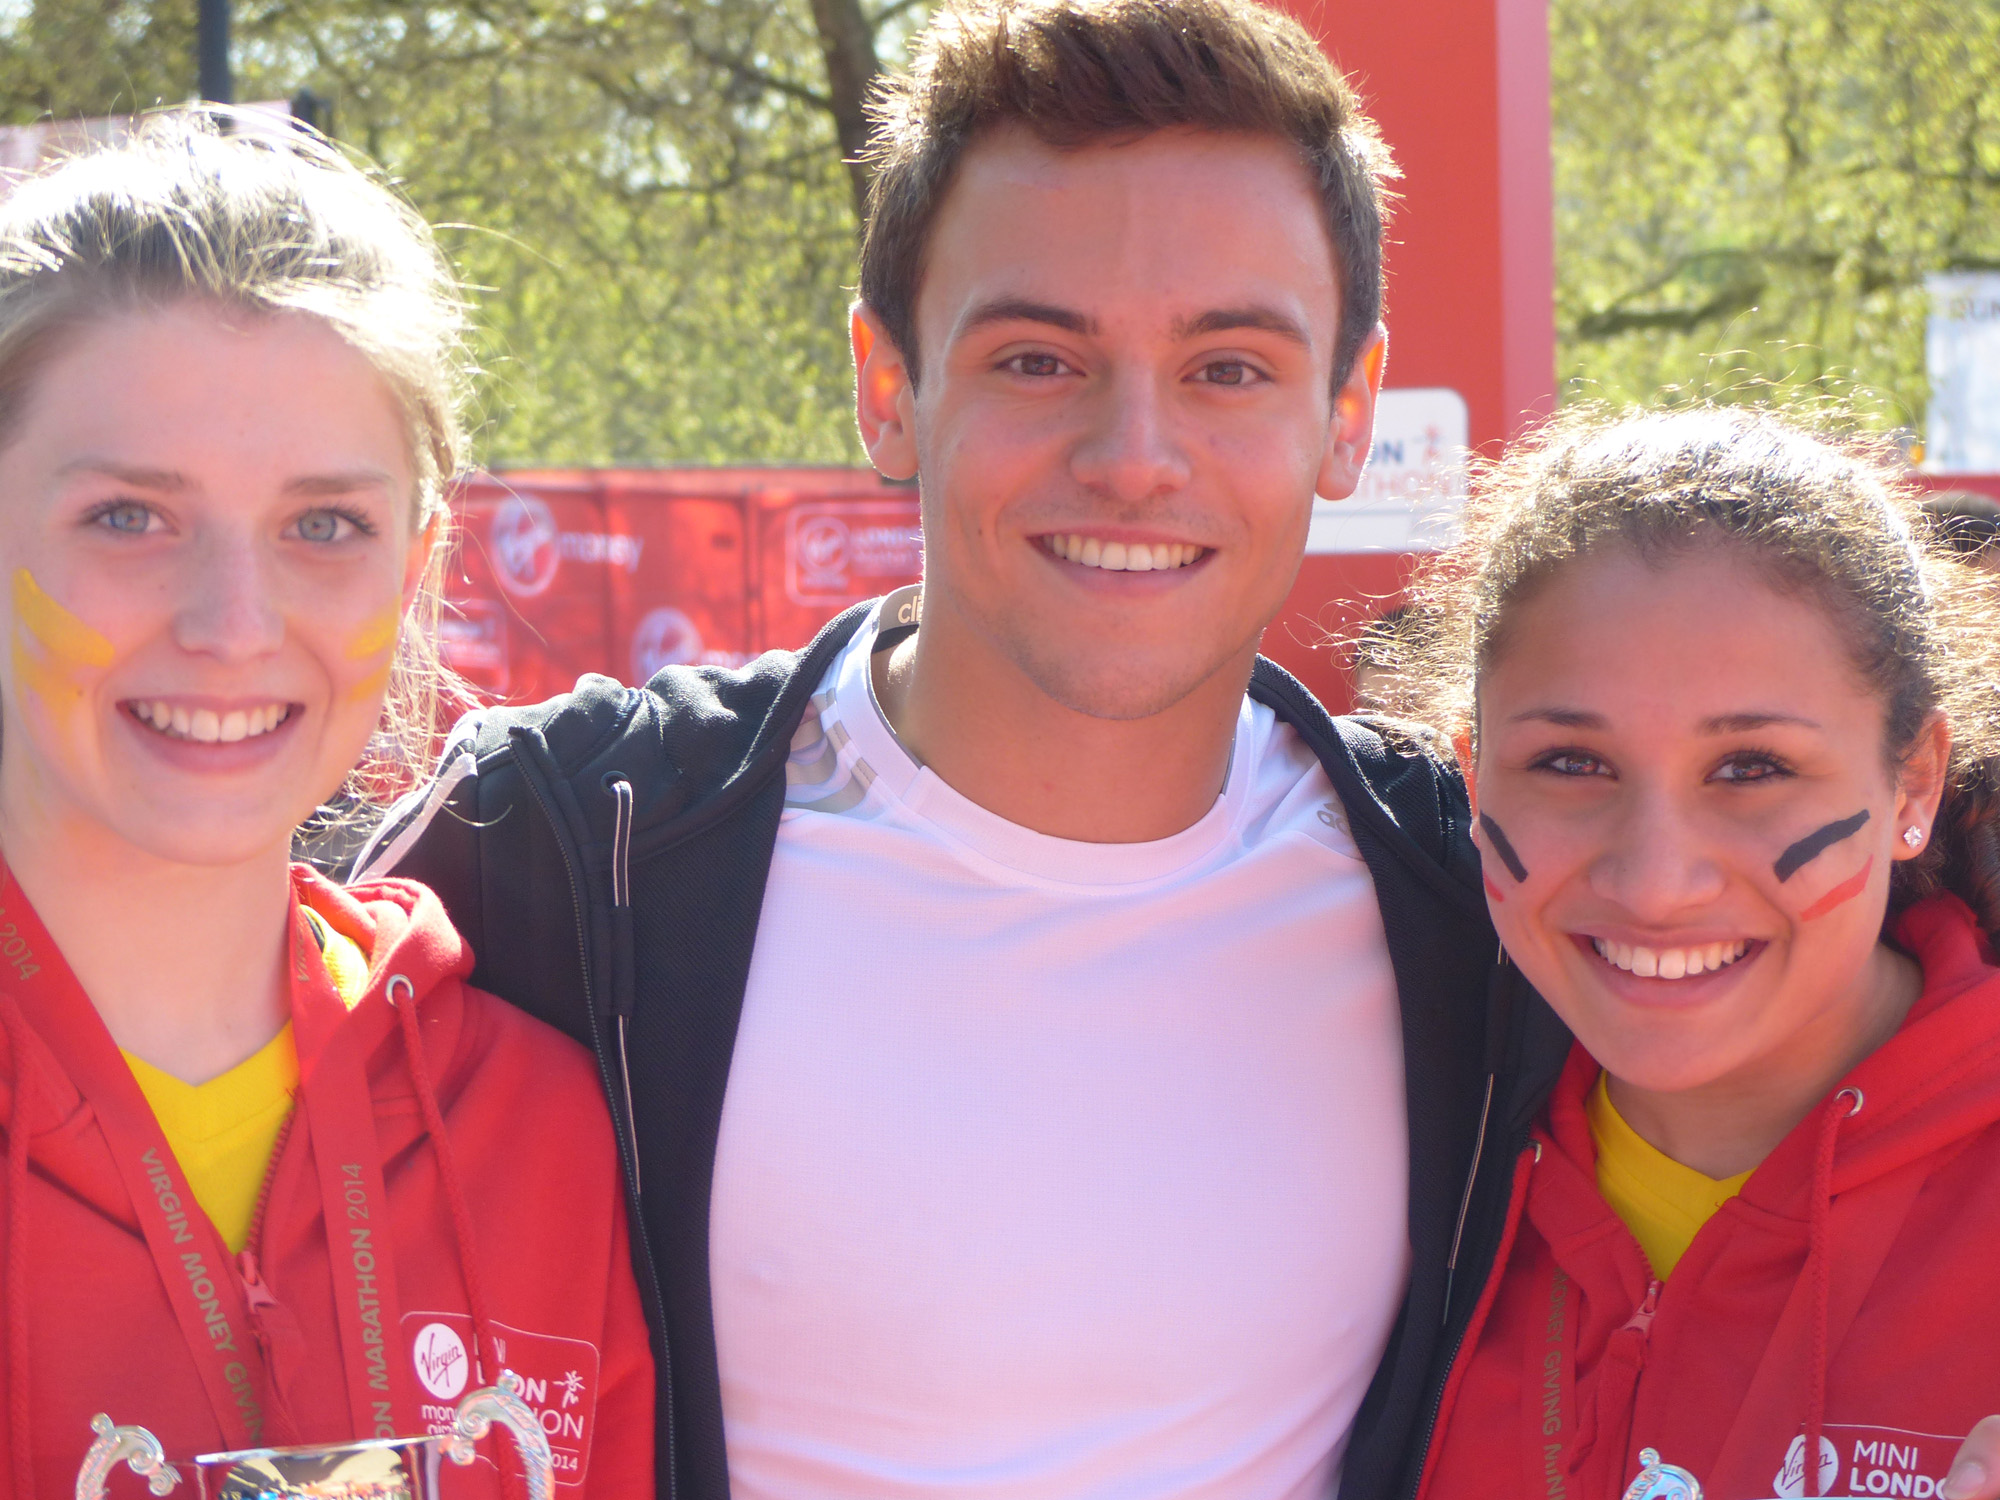 News Shopper: Sabrina Sinha (right) receives her medal from Tom Daley